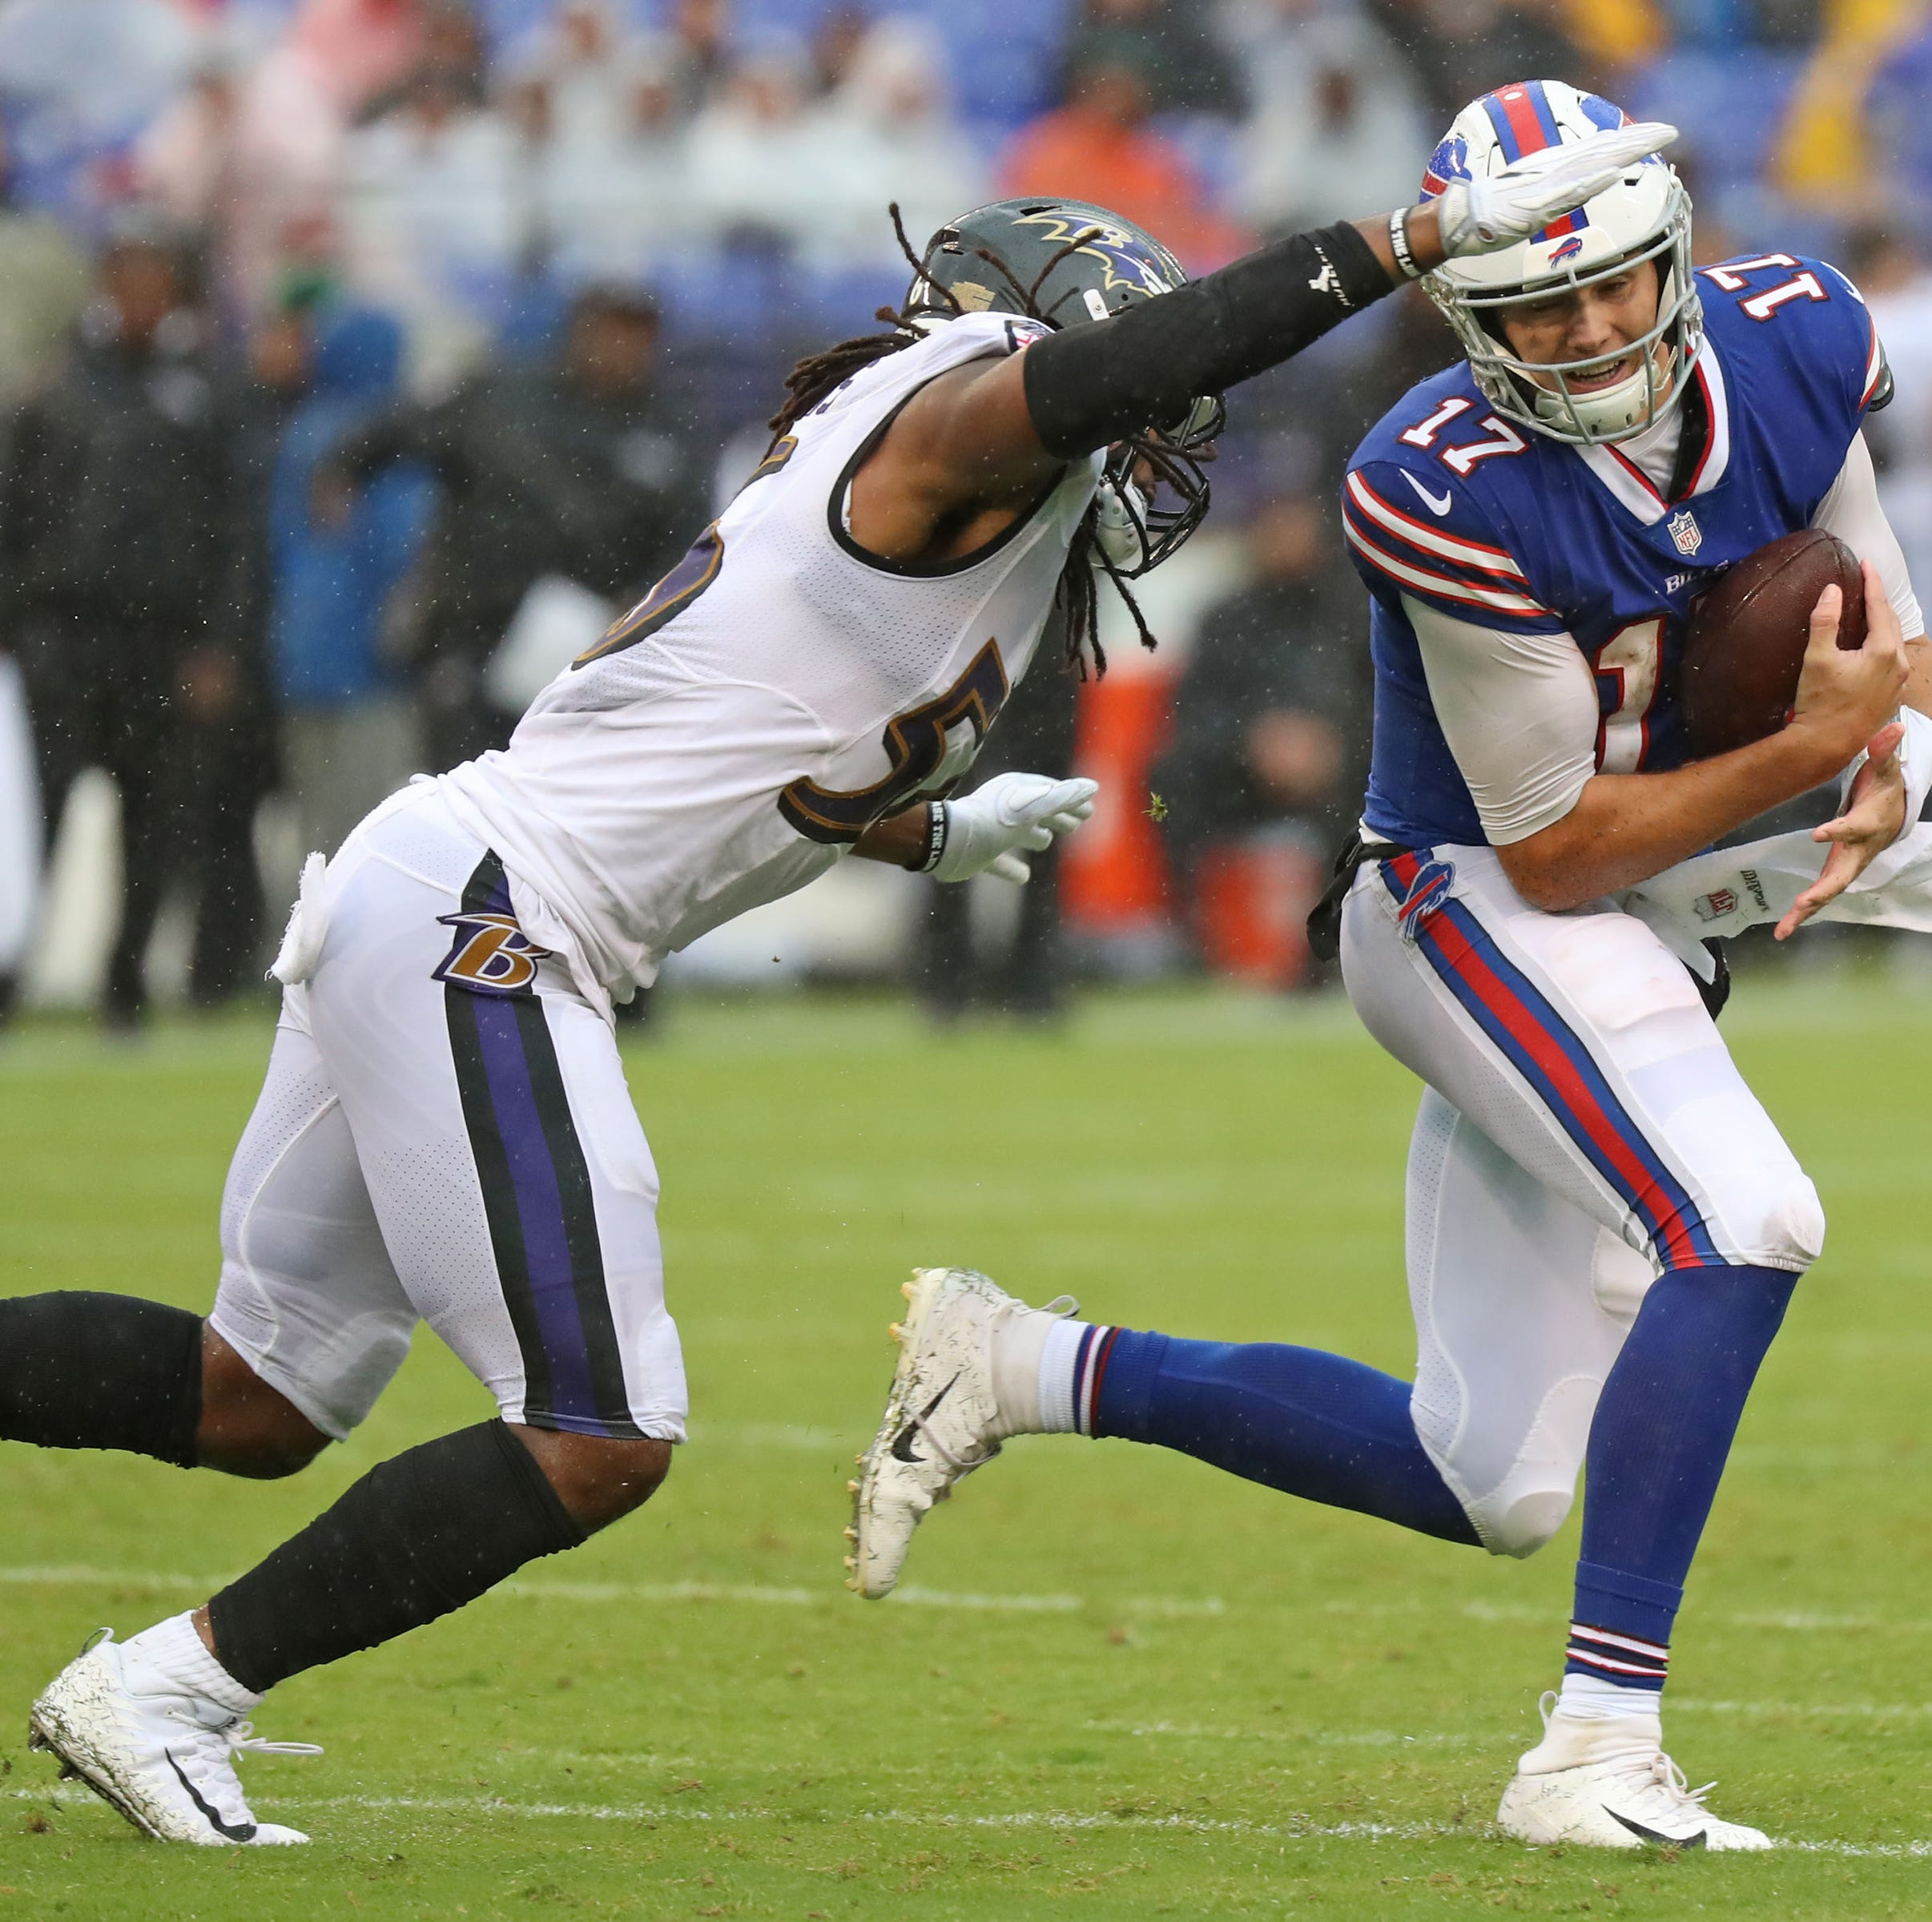 Buffalo Bills vs. Los Angeles Chargers: Preview and predictions